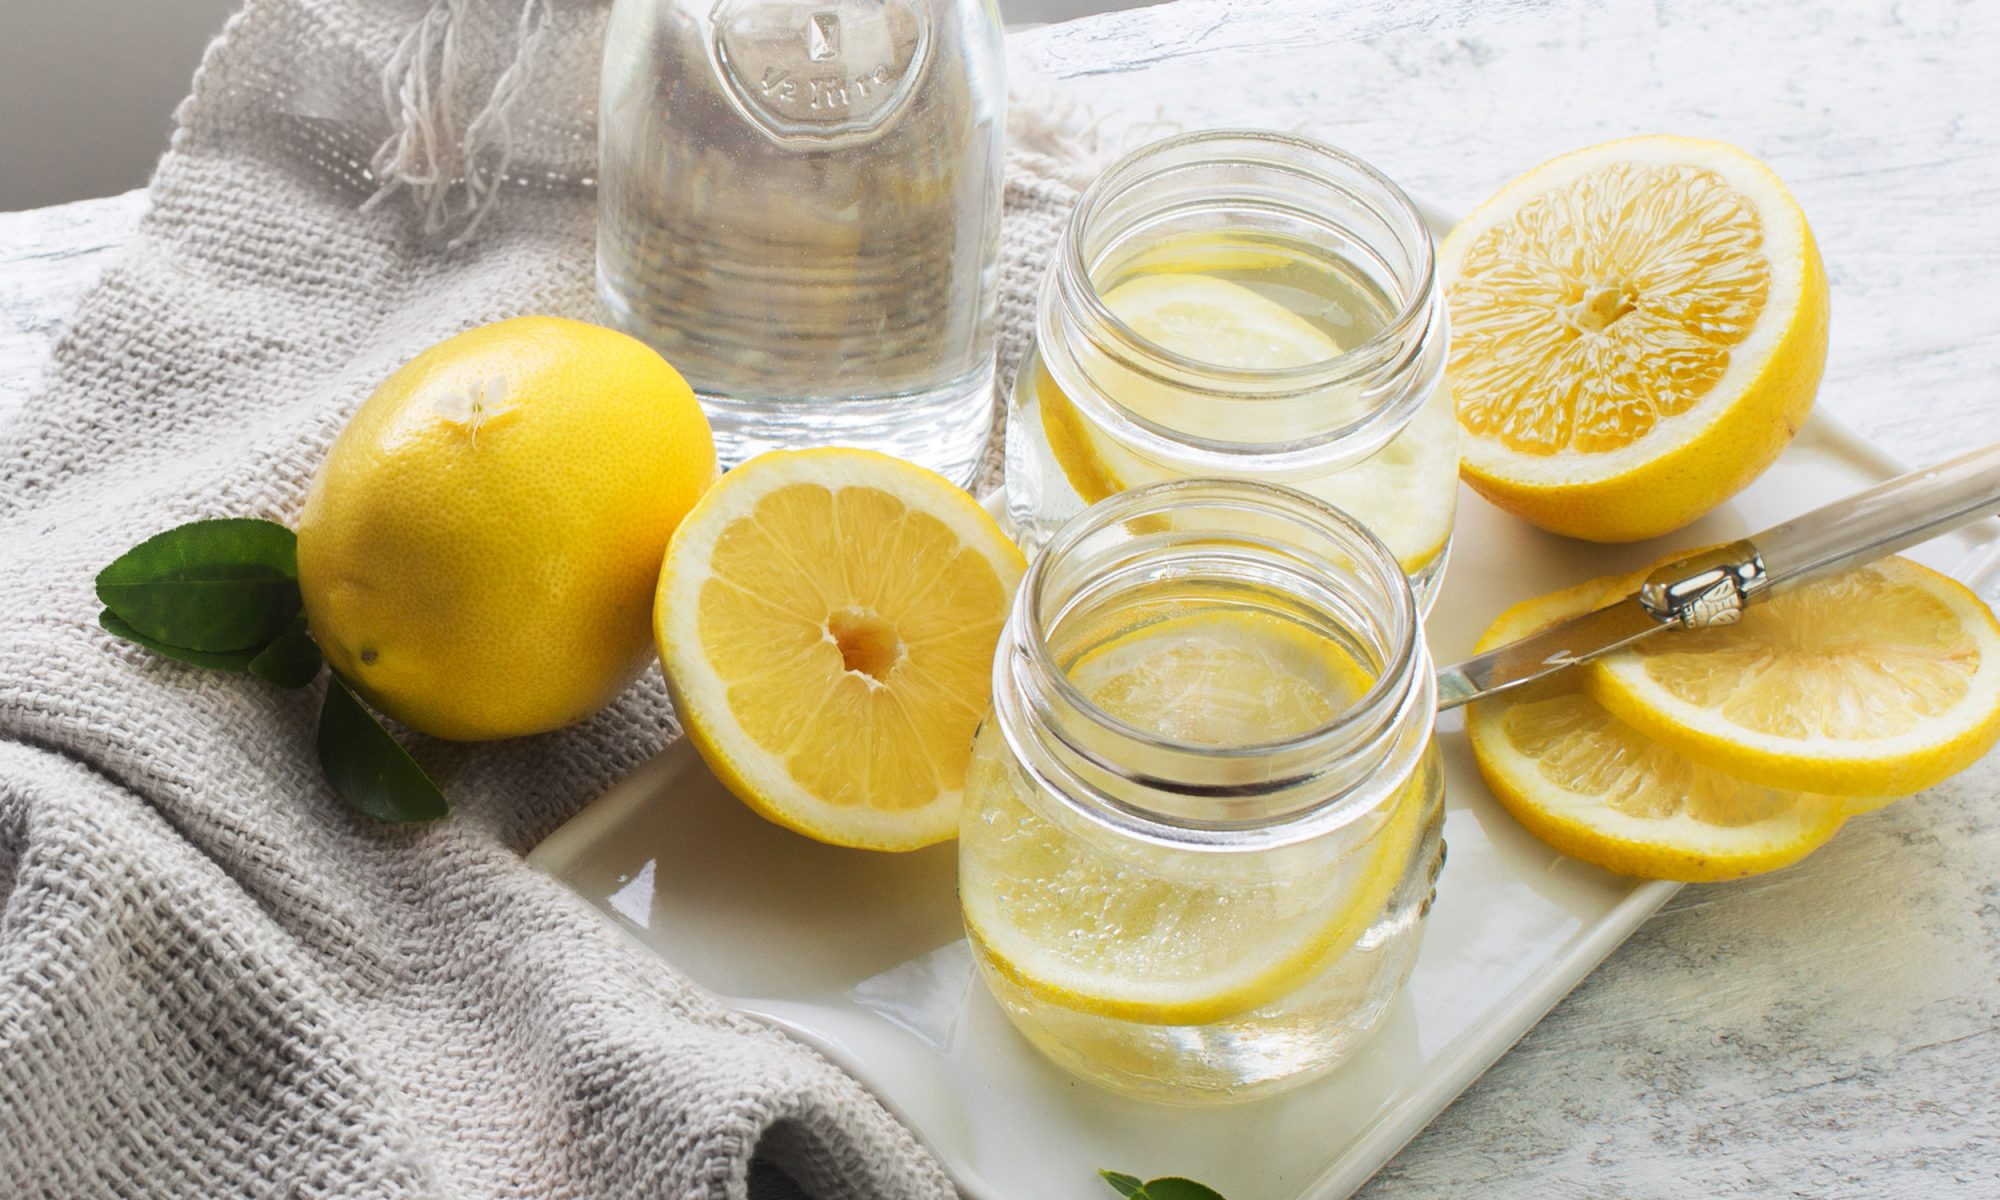 EC: Drinking Water with Lemon in the Morning Is Good for You